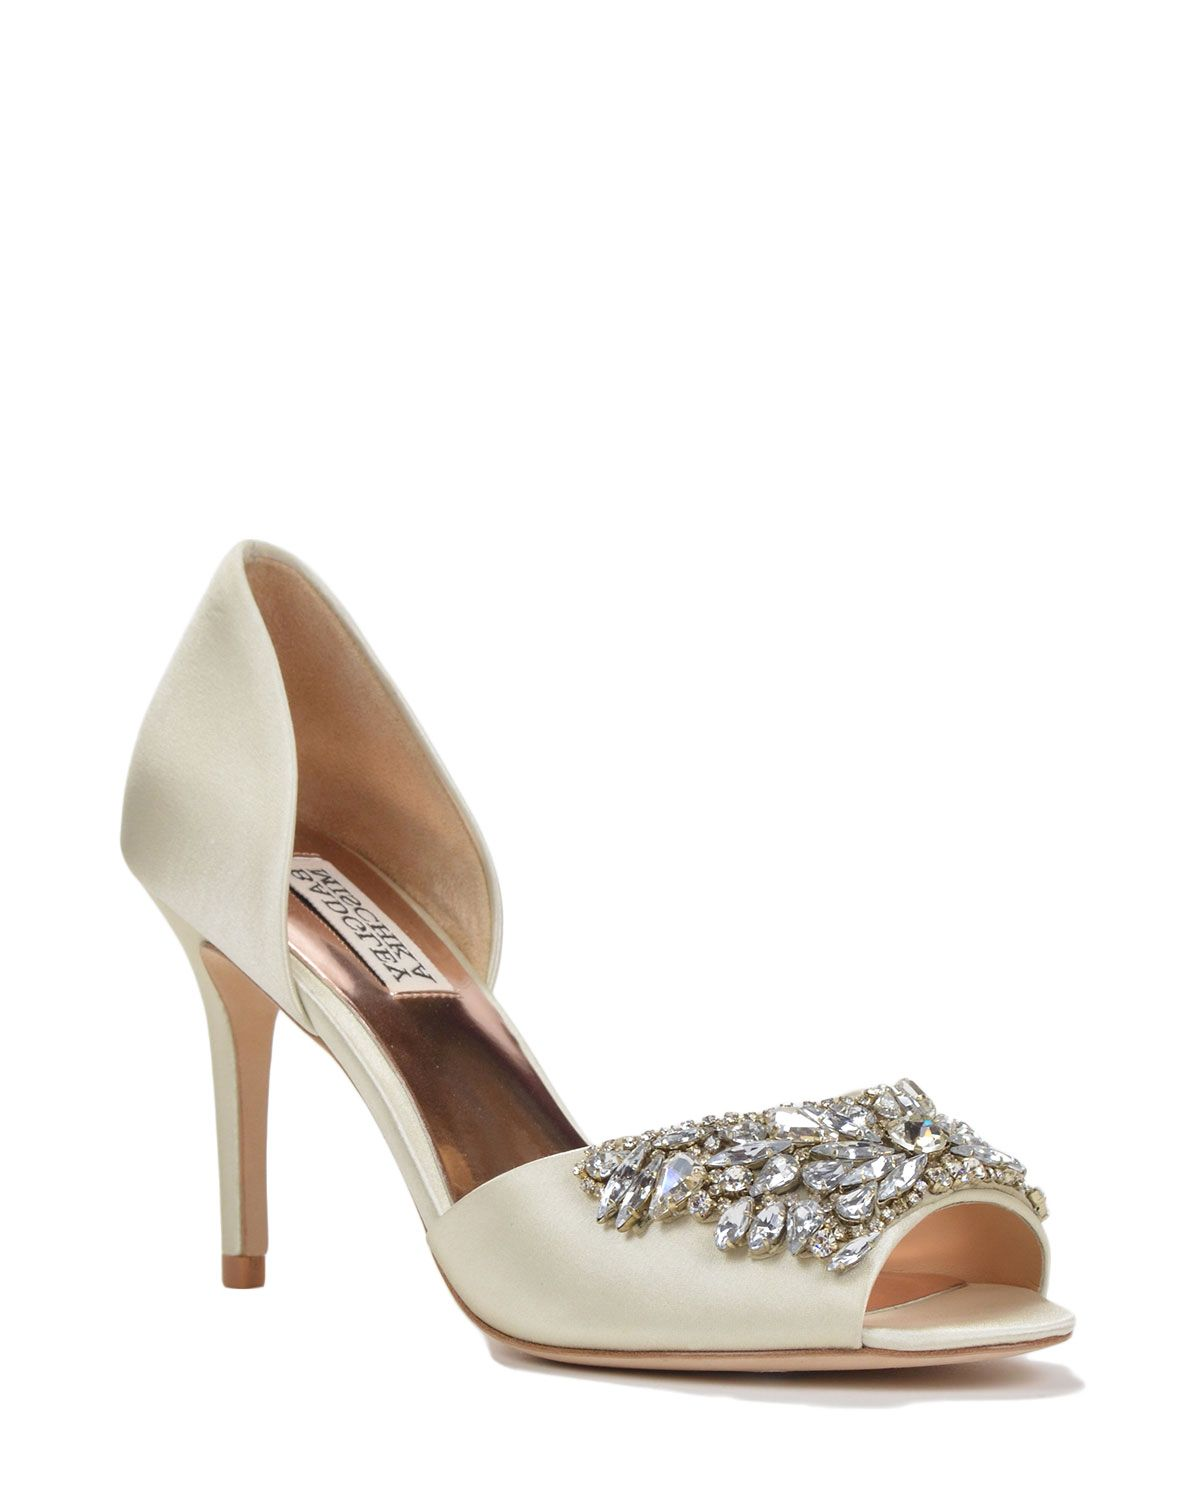 Used Badgley Mischka Shoes, $100 | Bridal Accessories | Louisville